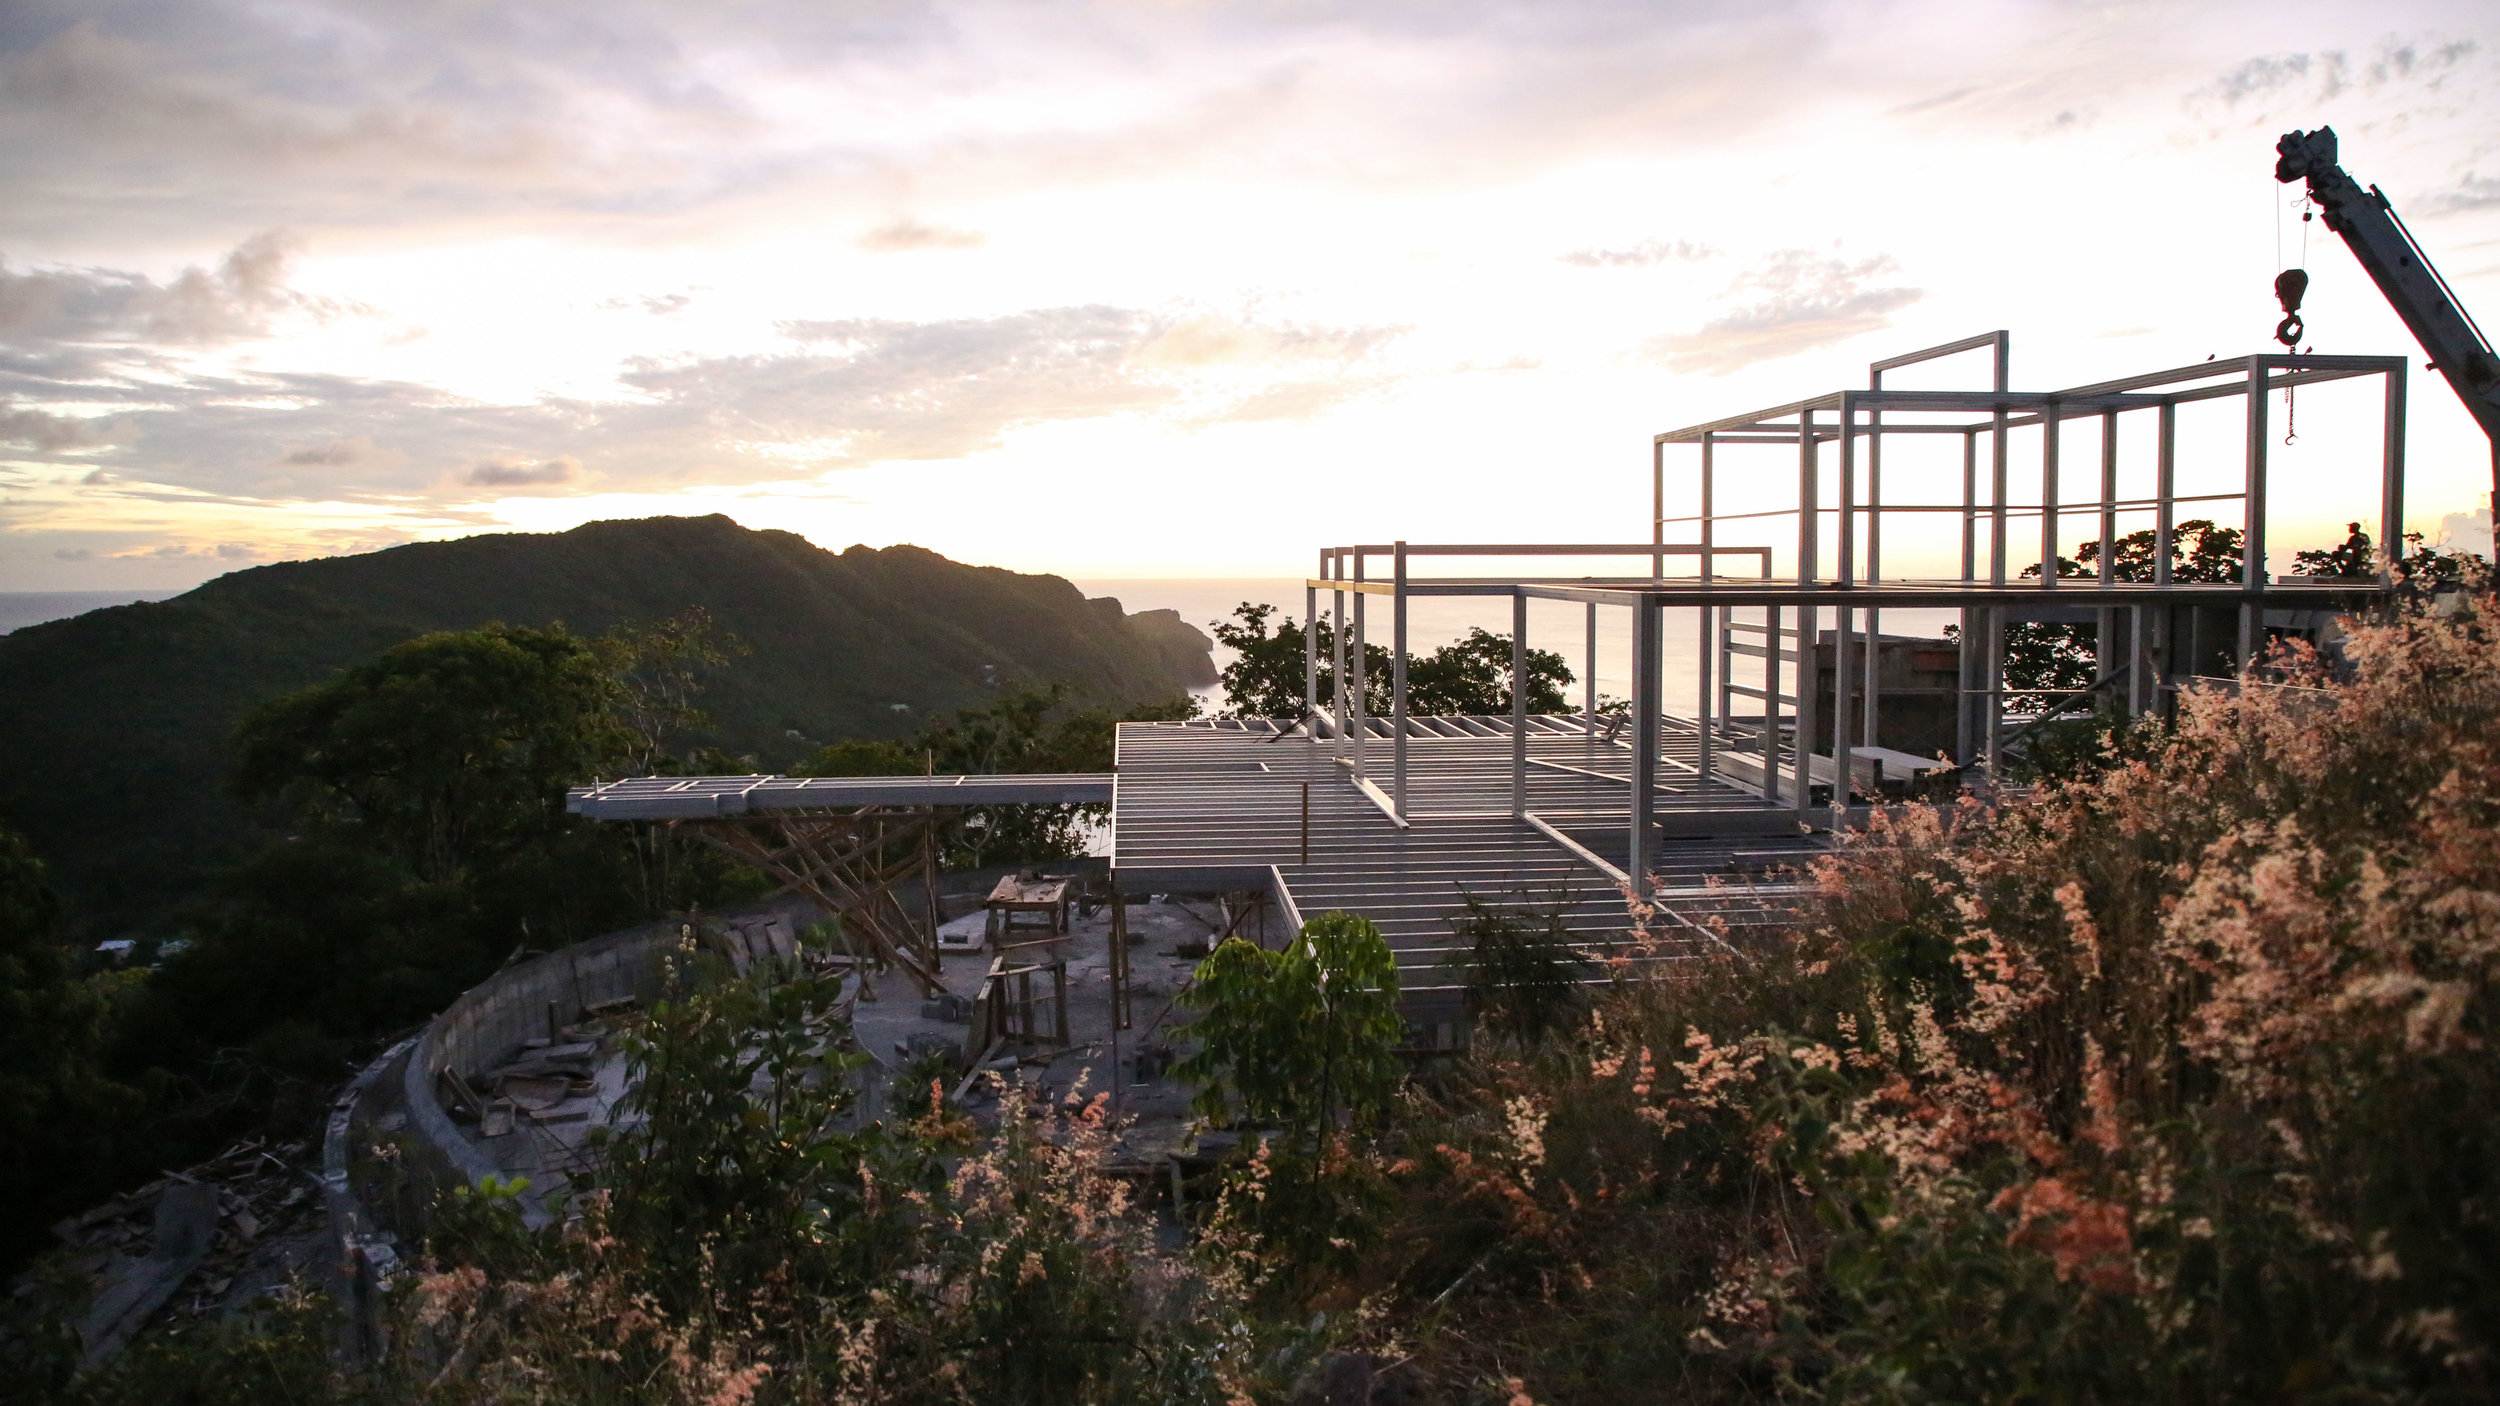 S.E.A.-Studio-Environmental-Architecture-David-Hertz-FAIA-Sail-House-Cloud9-Bequia-Saint-Vincent-Grenadines-Caribbean-Island-sustainable-regenerative-restorative-green-design-hospitality-tropical-resort-hotel-biomimetic-tensile-structure-progress-10.jpg